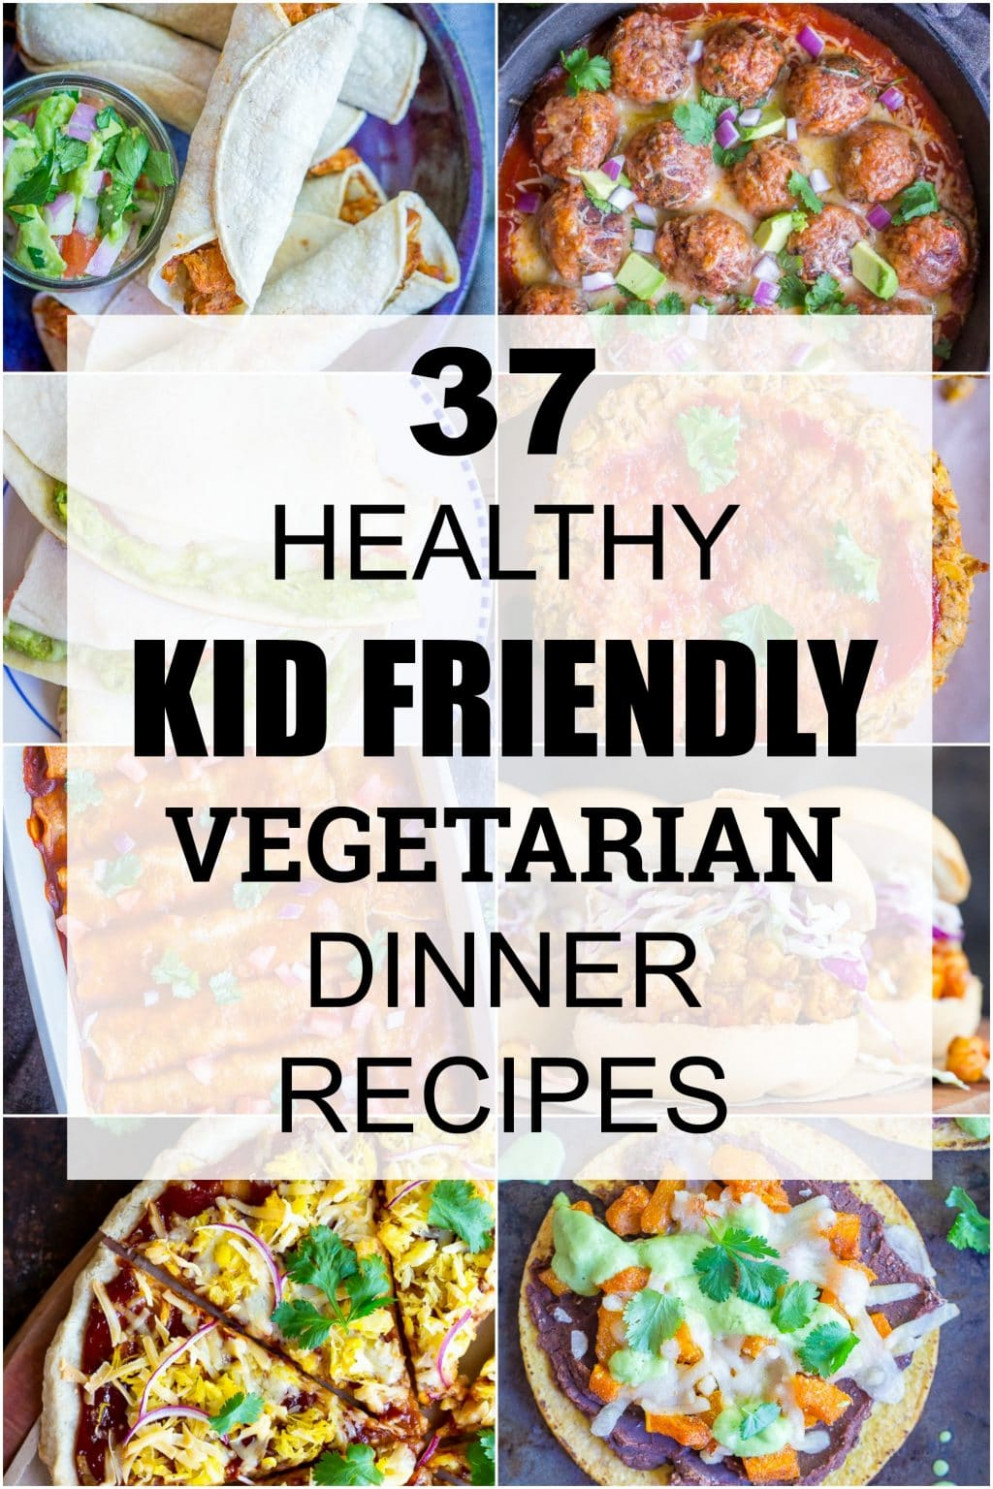 15 Healthy Kid Friendly Vegetarian Dinner Recipes - She ..